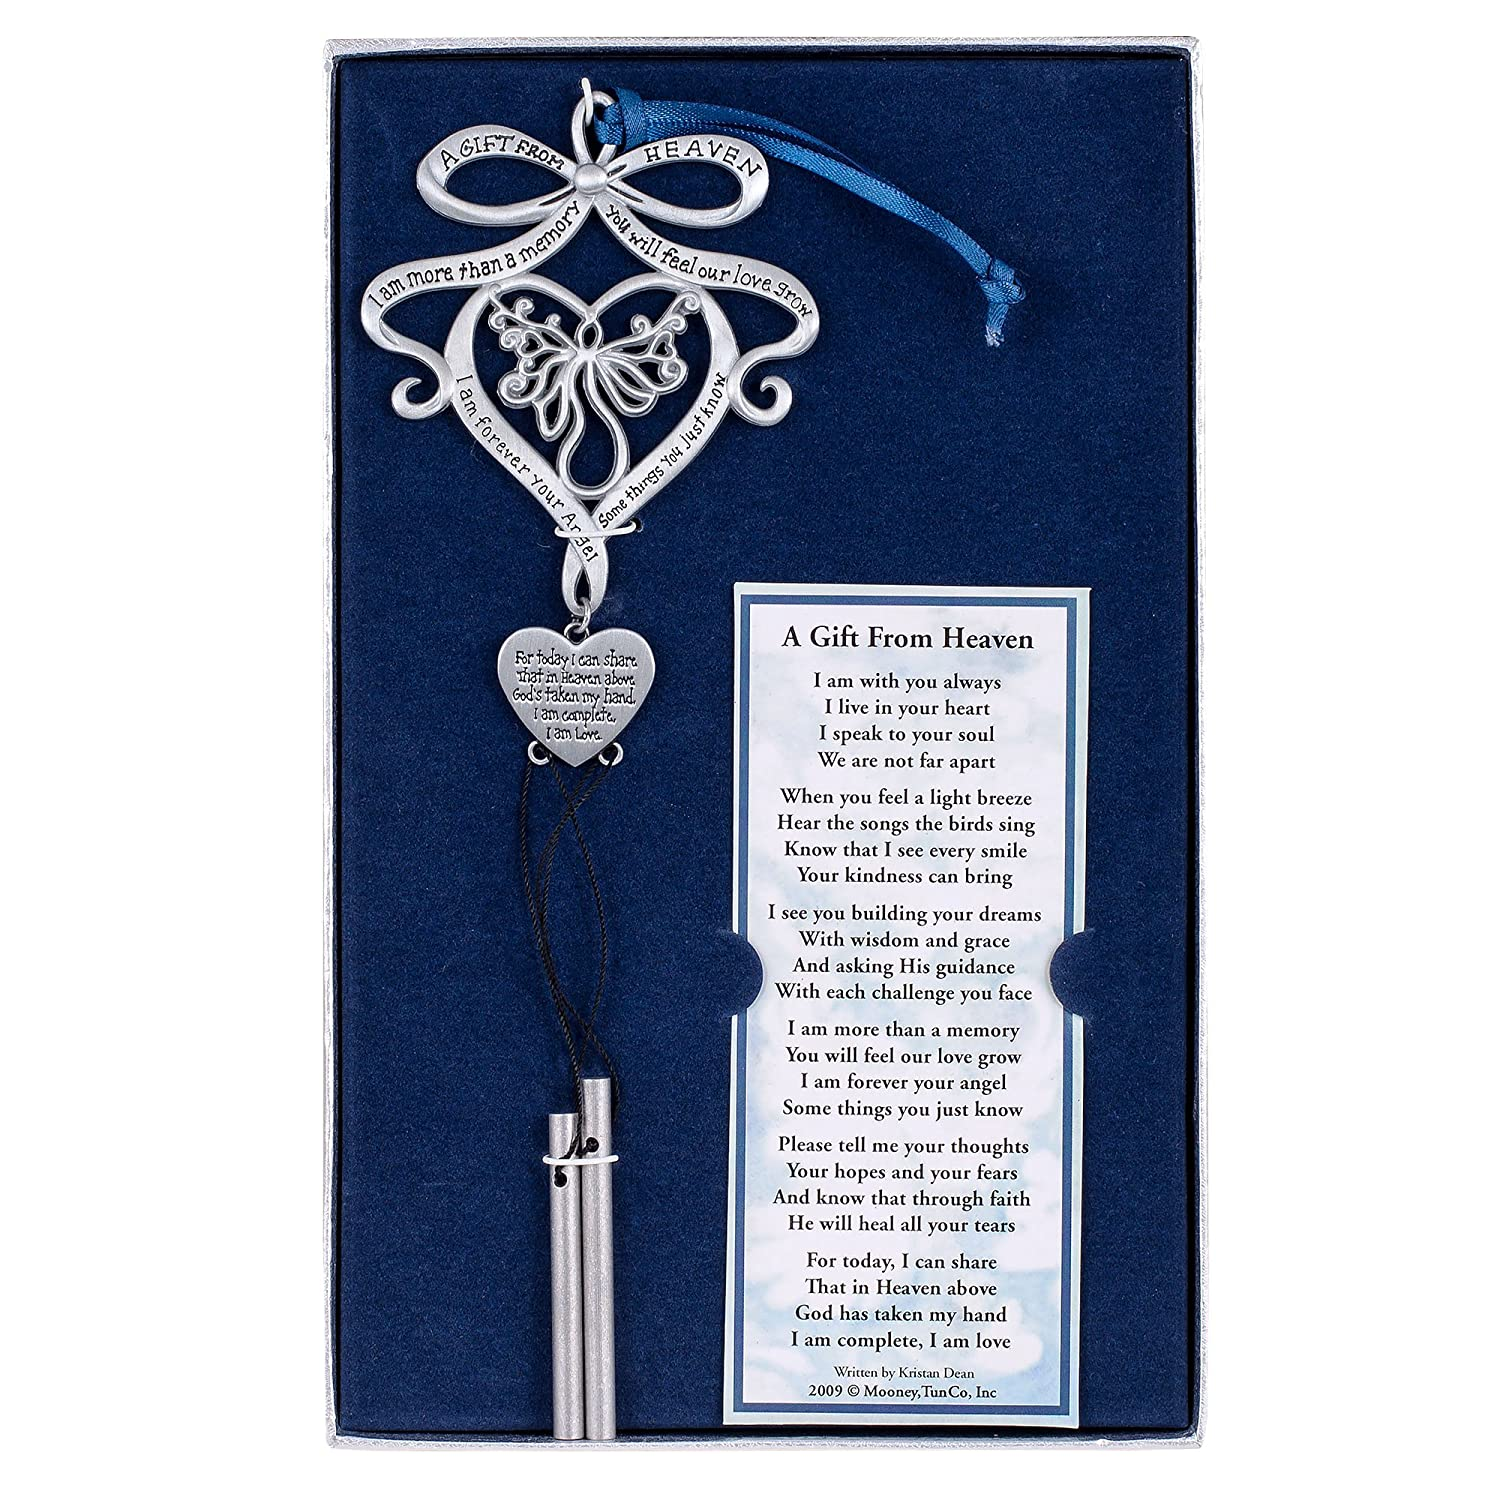 Mooney Tunco A Gift from Heaven Pewter Memorial Wind Chime MooneyTunCo Inc.